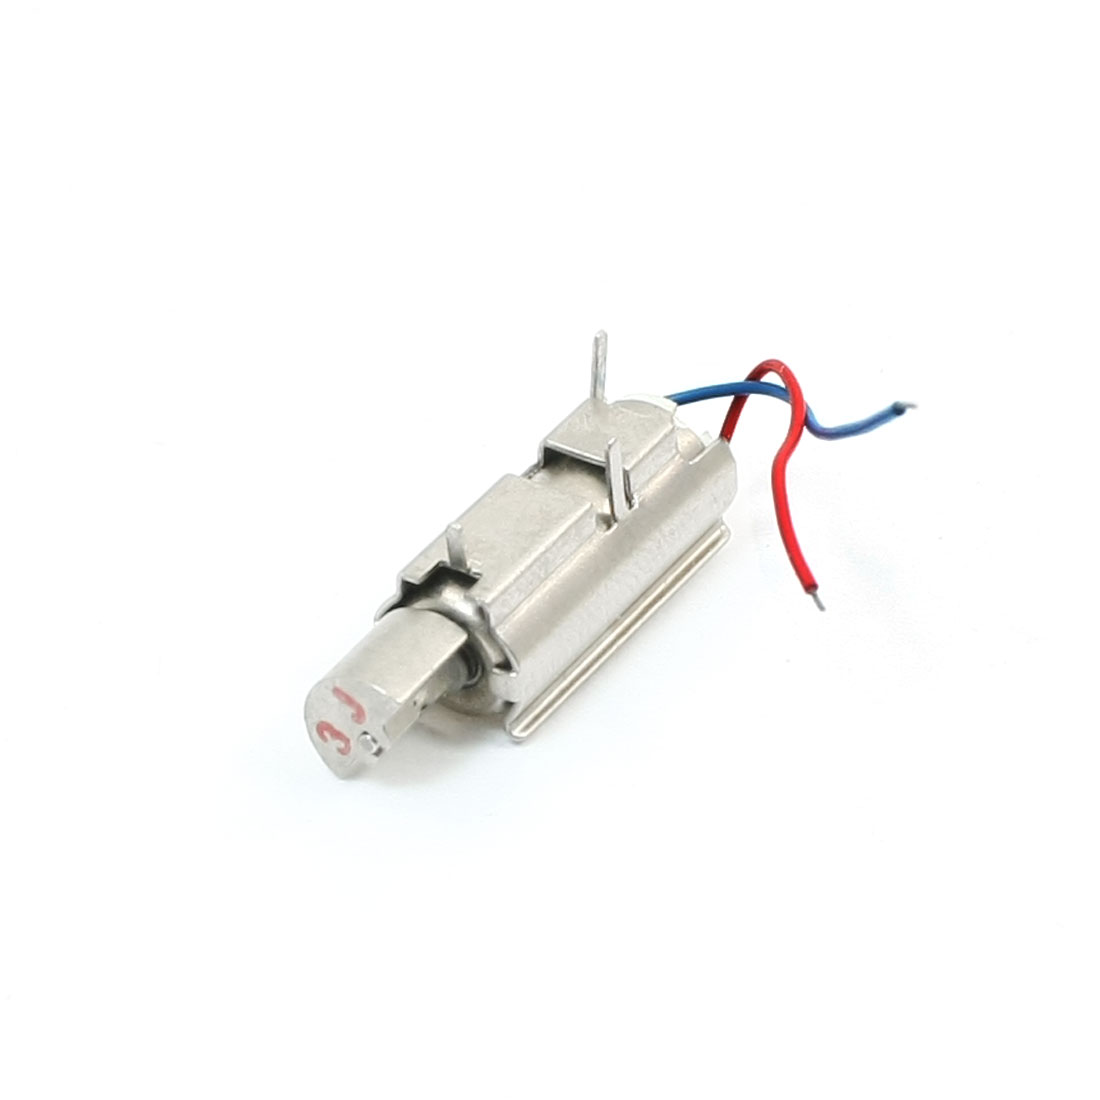 10000RPM-Speed-DC3V-3-Pins-6mmx15mm-Micro-Coreless-Vibration-Motor